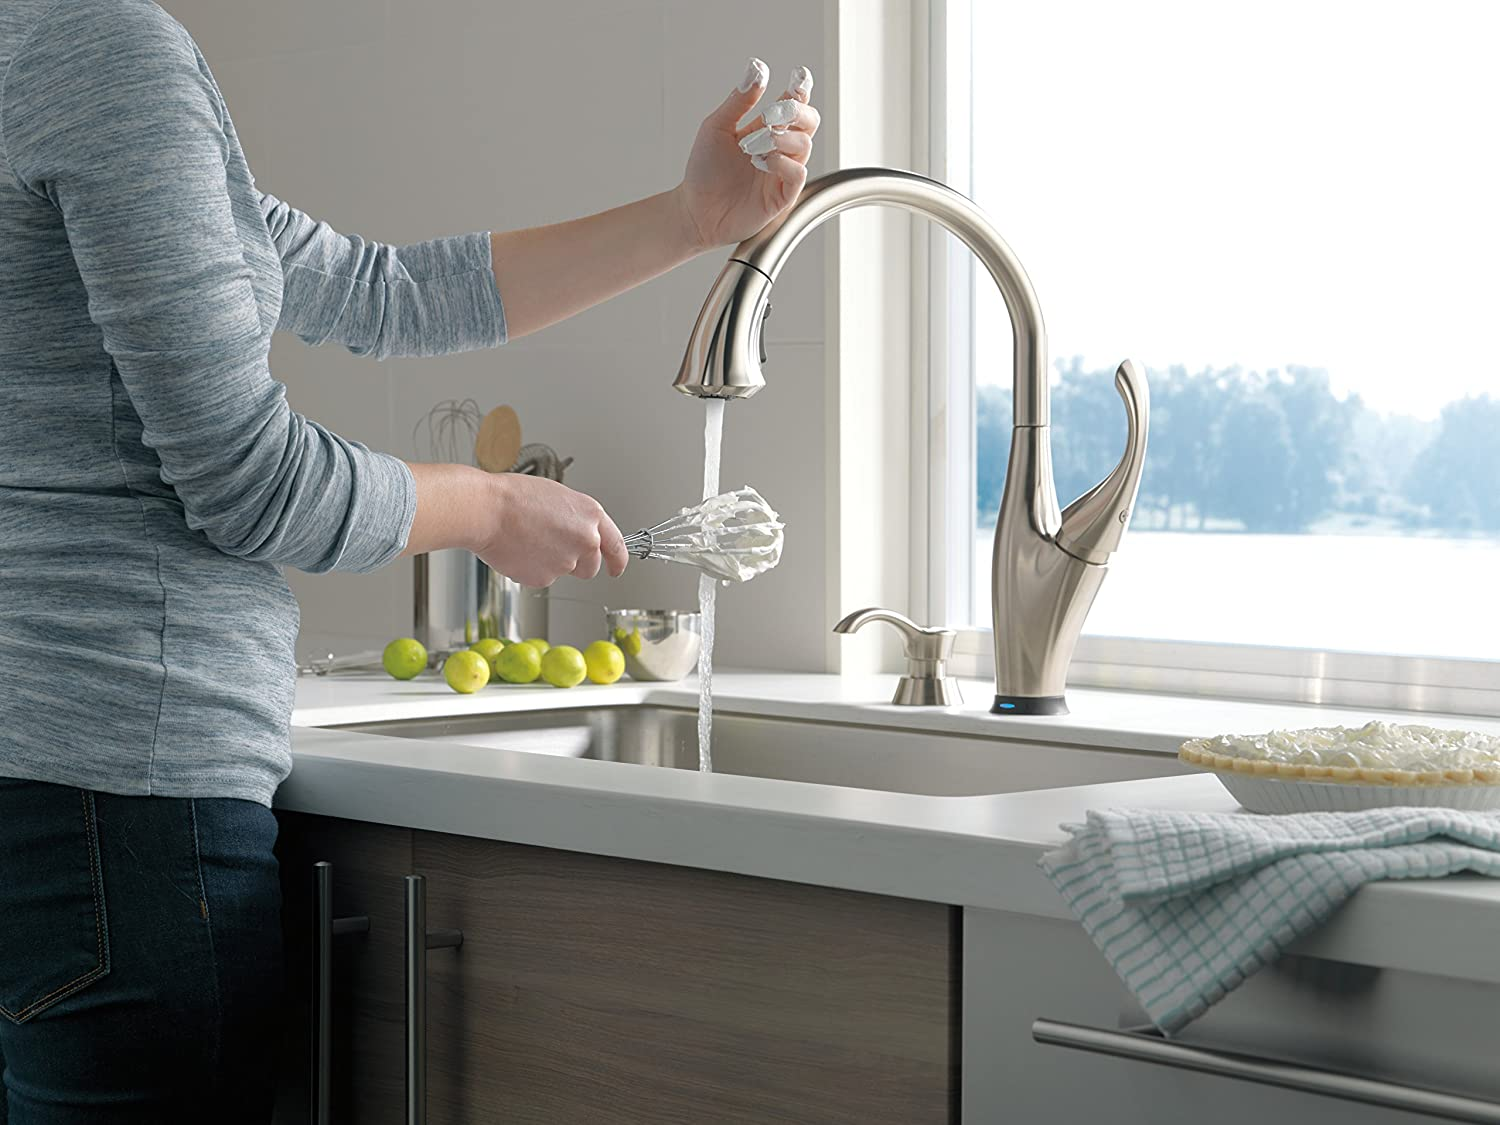 Delta 9192t Sssd Dst Addison Single Handle Pull Down Touch Kitchen Diagram As Well Double Sink Drain Plumbing On Faucet With Touch2o Technology Magnetic Docking Spray Head And Soap Dispenser